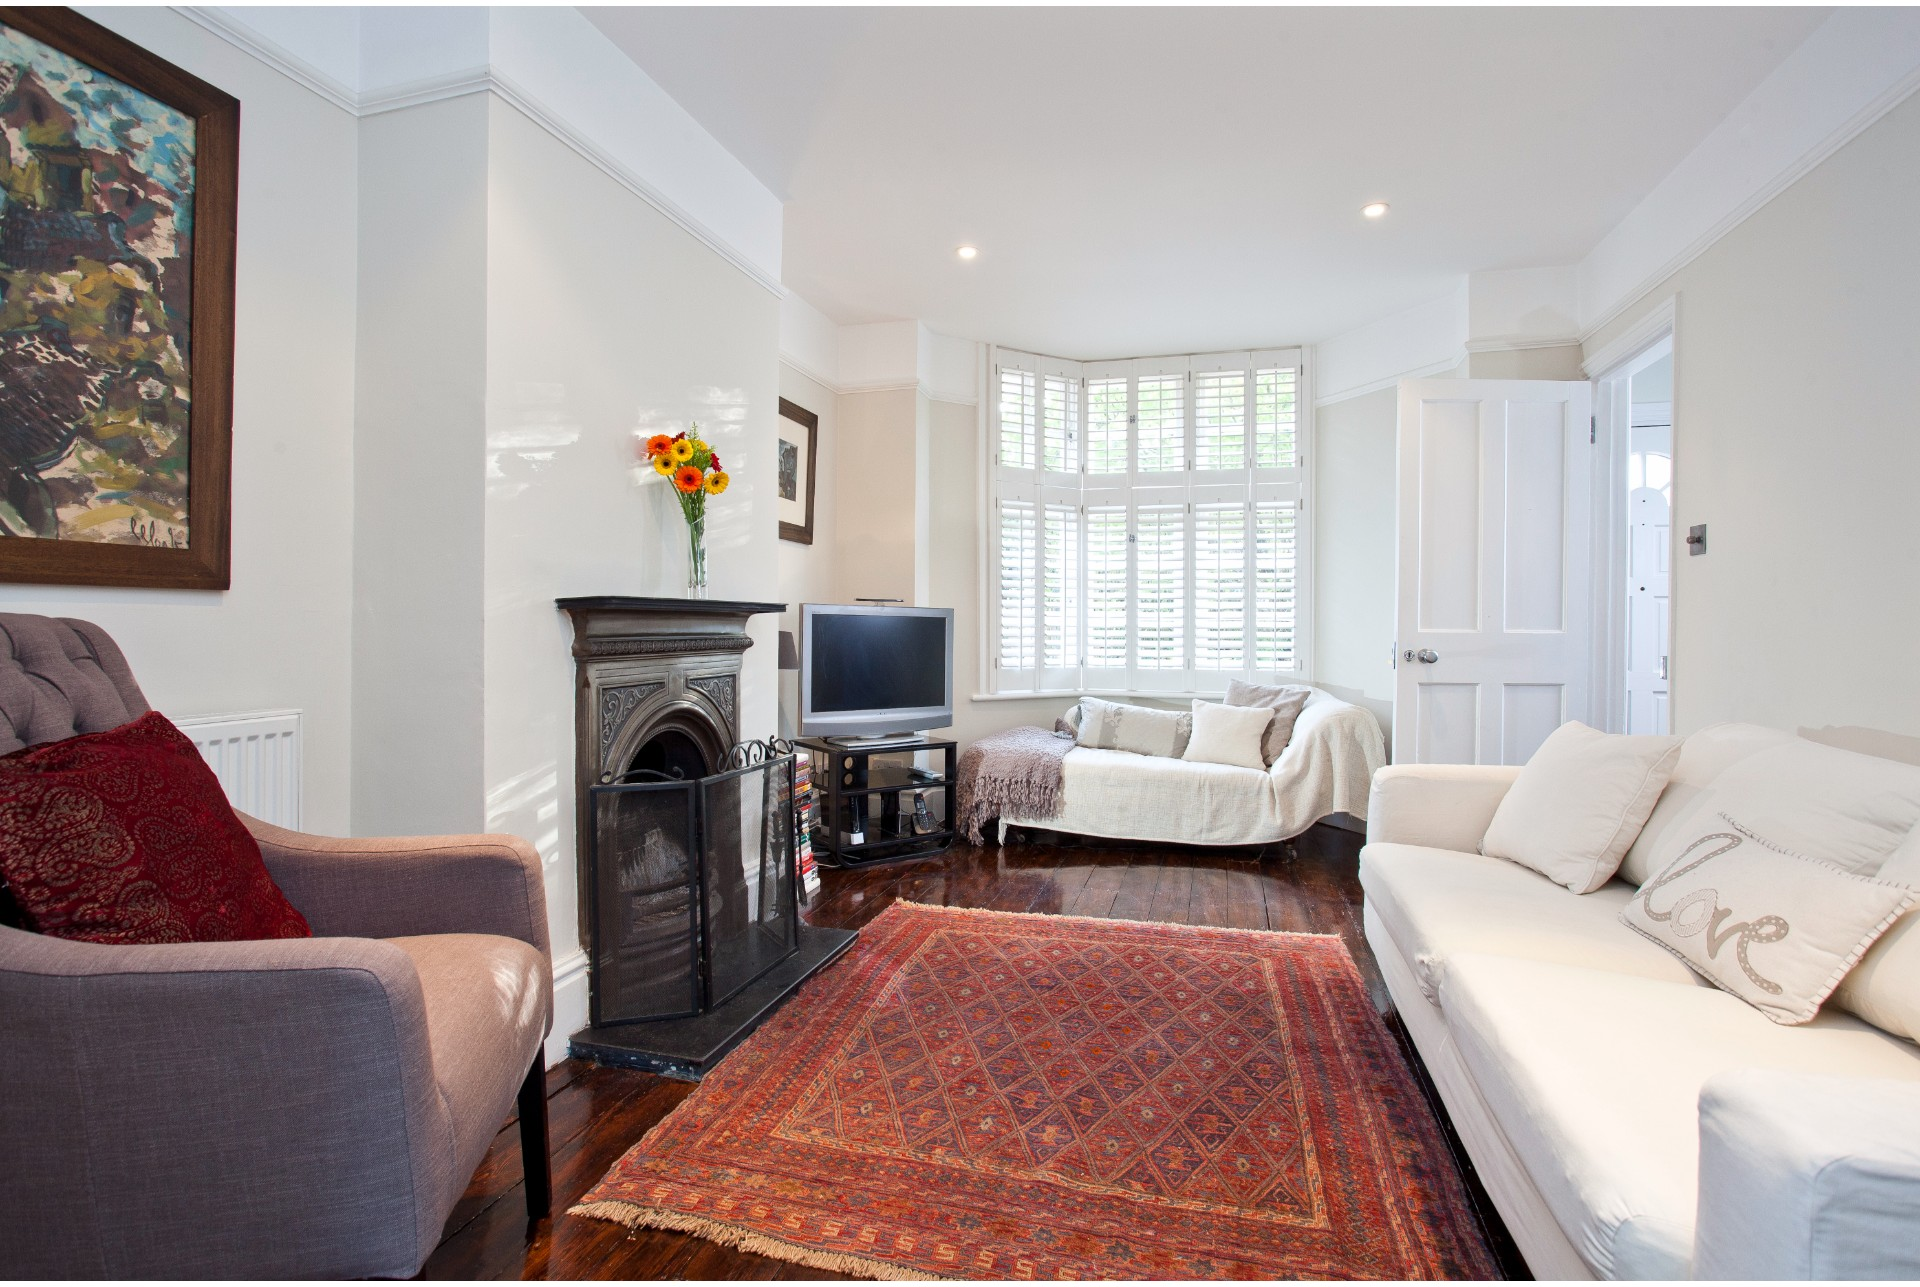 Lilac Cottage\', Cheapside Road, Cheapside, Ascot, SL5 7QG – Finchlea ...